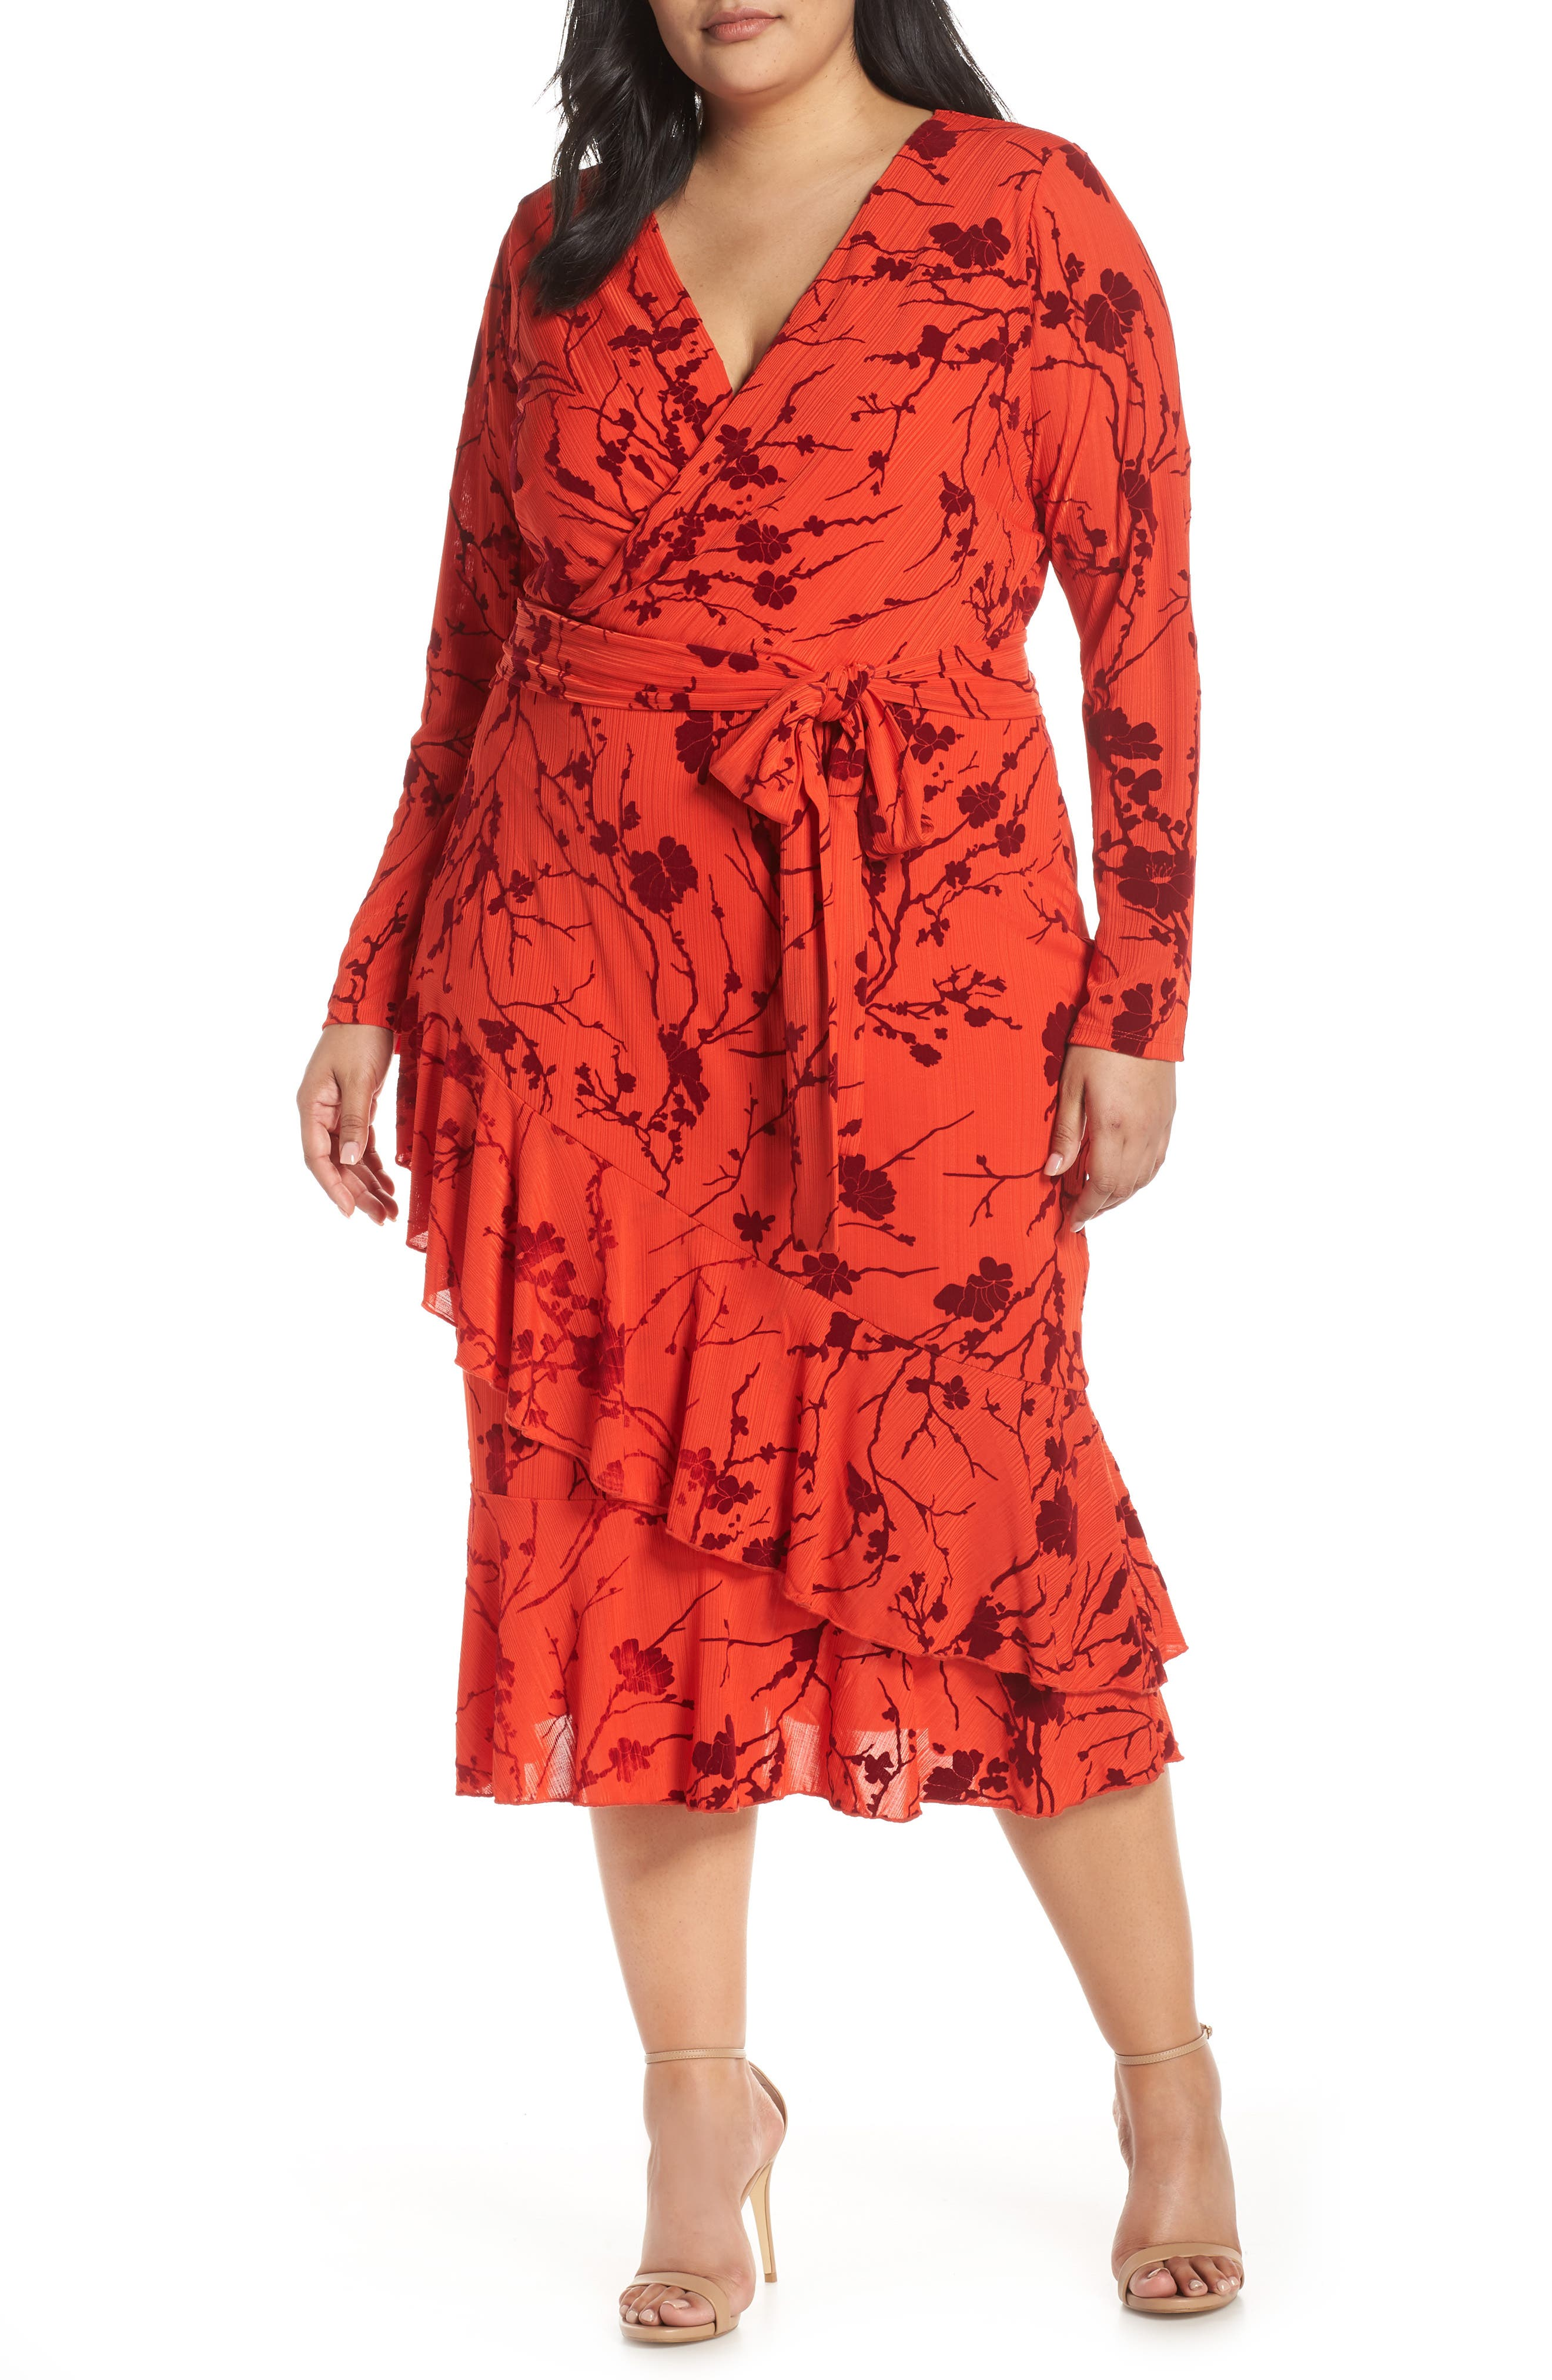 1930s Dresses | 30s Art Deco Dress Womens Rachel Rachel Roy Ruffle Hem Faux Wrap Midi Dress $149.00 AT vintagedancer.com